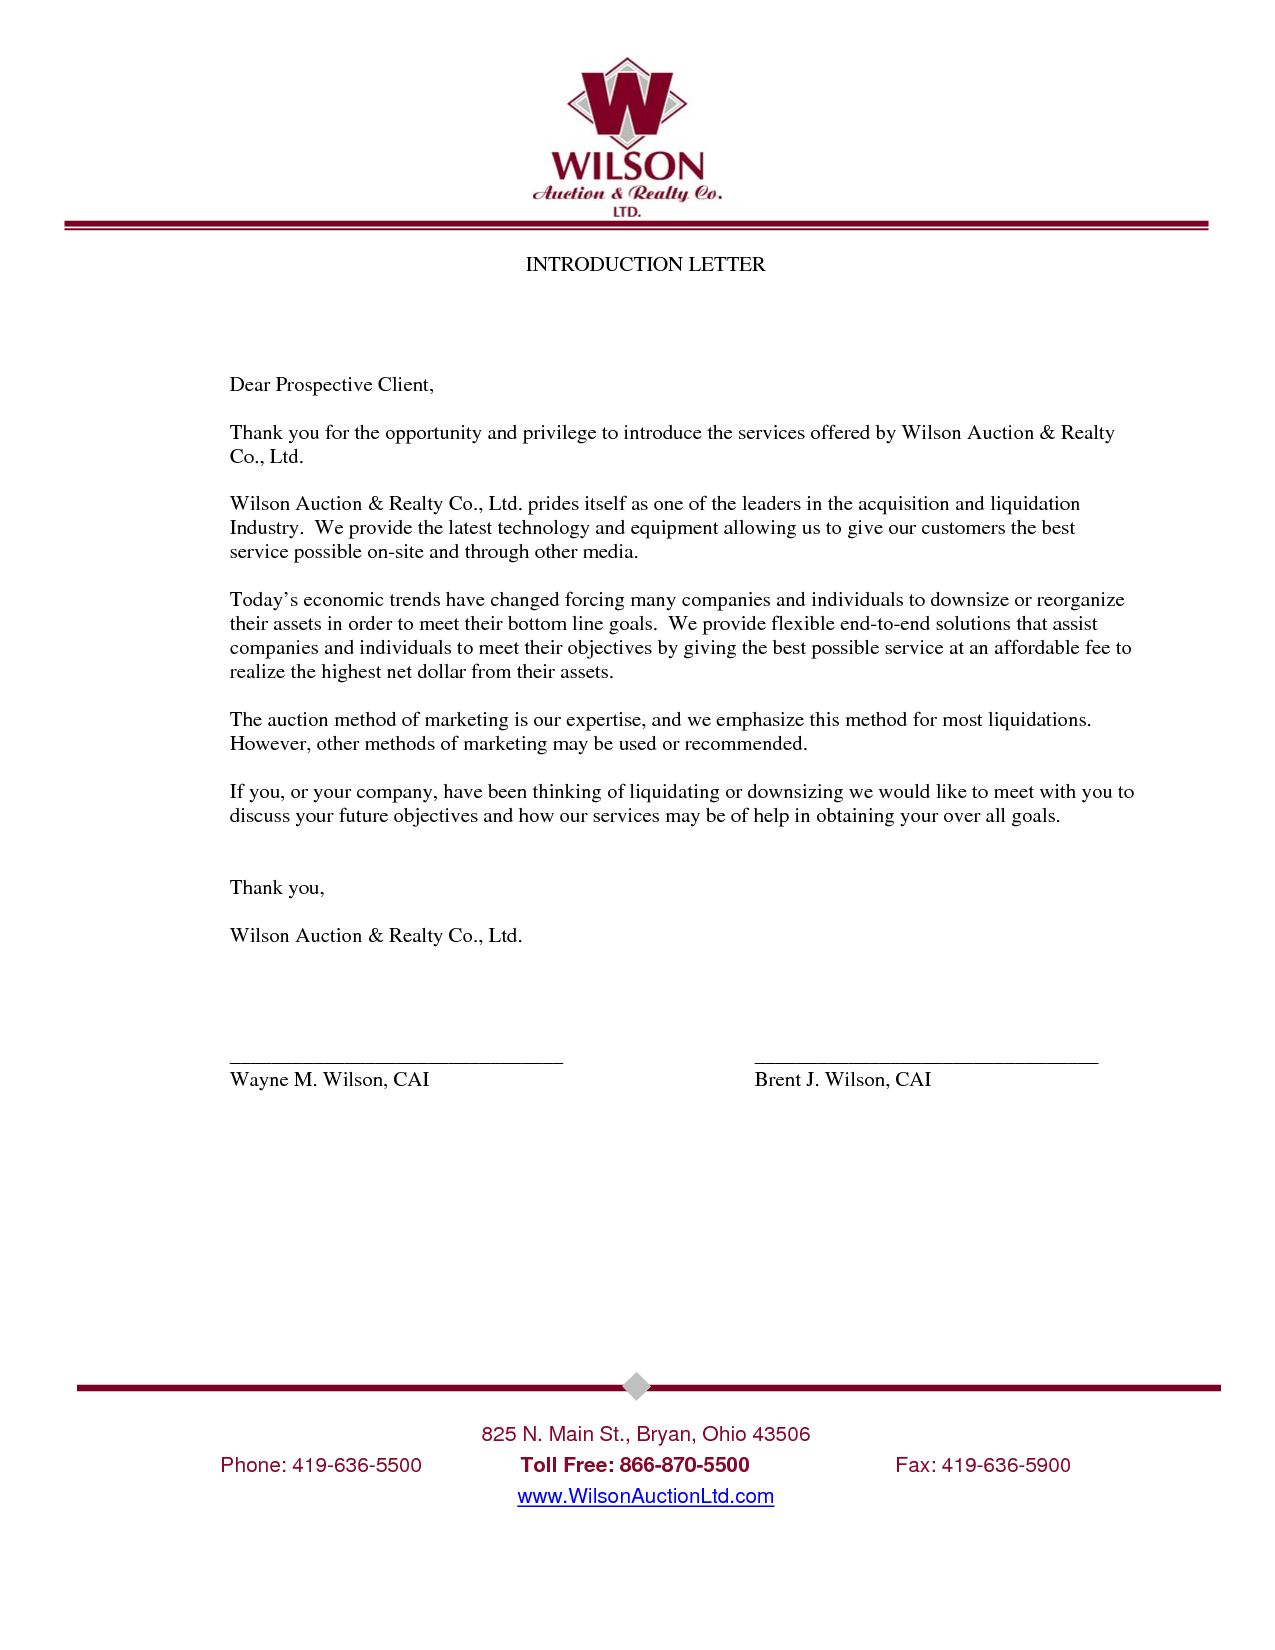 introduction letter to client for services